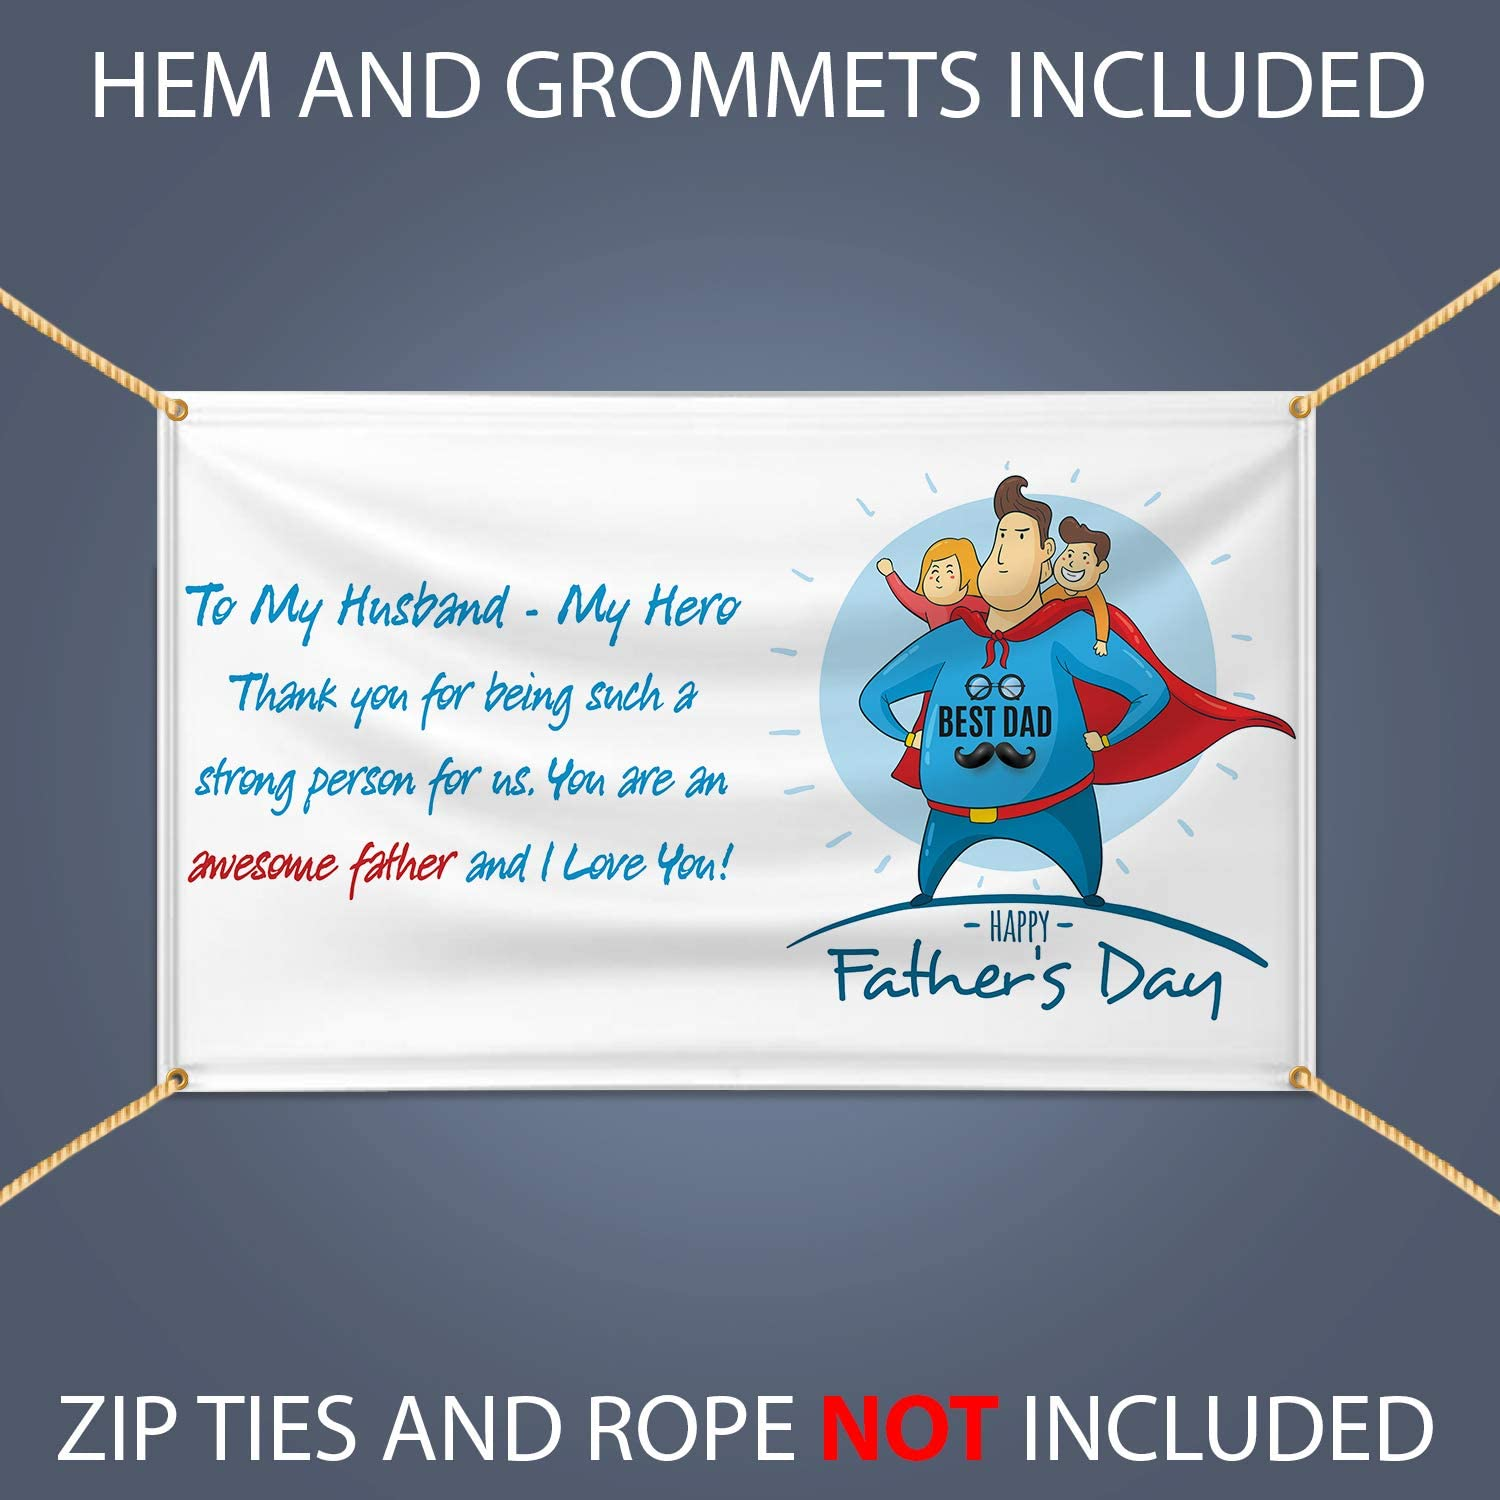 Happy Fathers Day Best Dad Vinyl Banner Flex Banner with Hem and Metal Grommets 6 X 3 Party Supplies /& Decorations Sign for Indoor Outdoor Decor